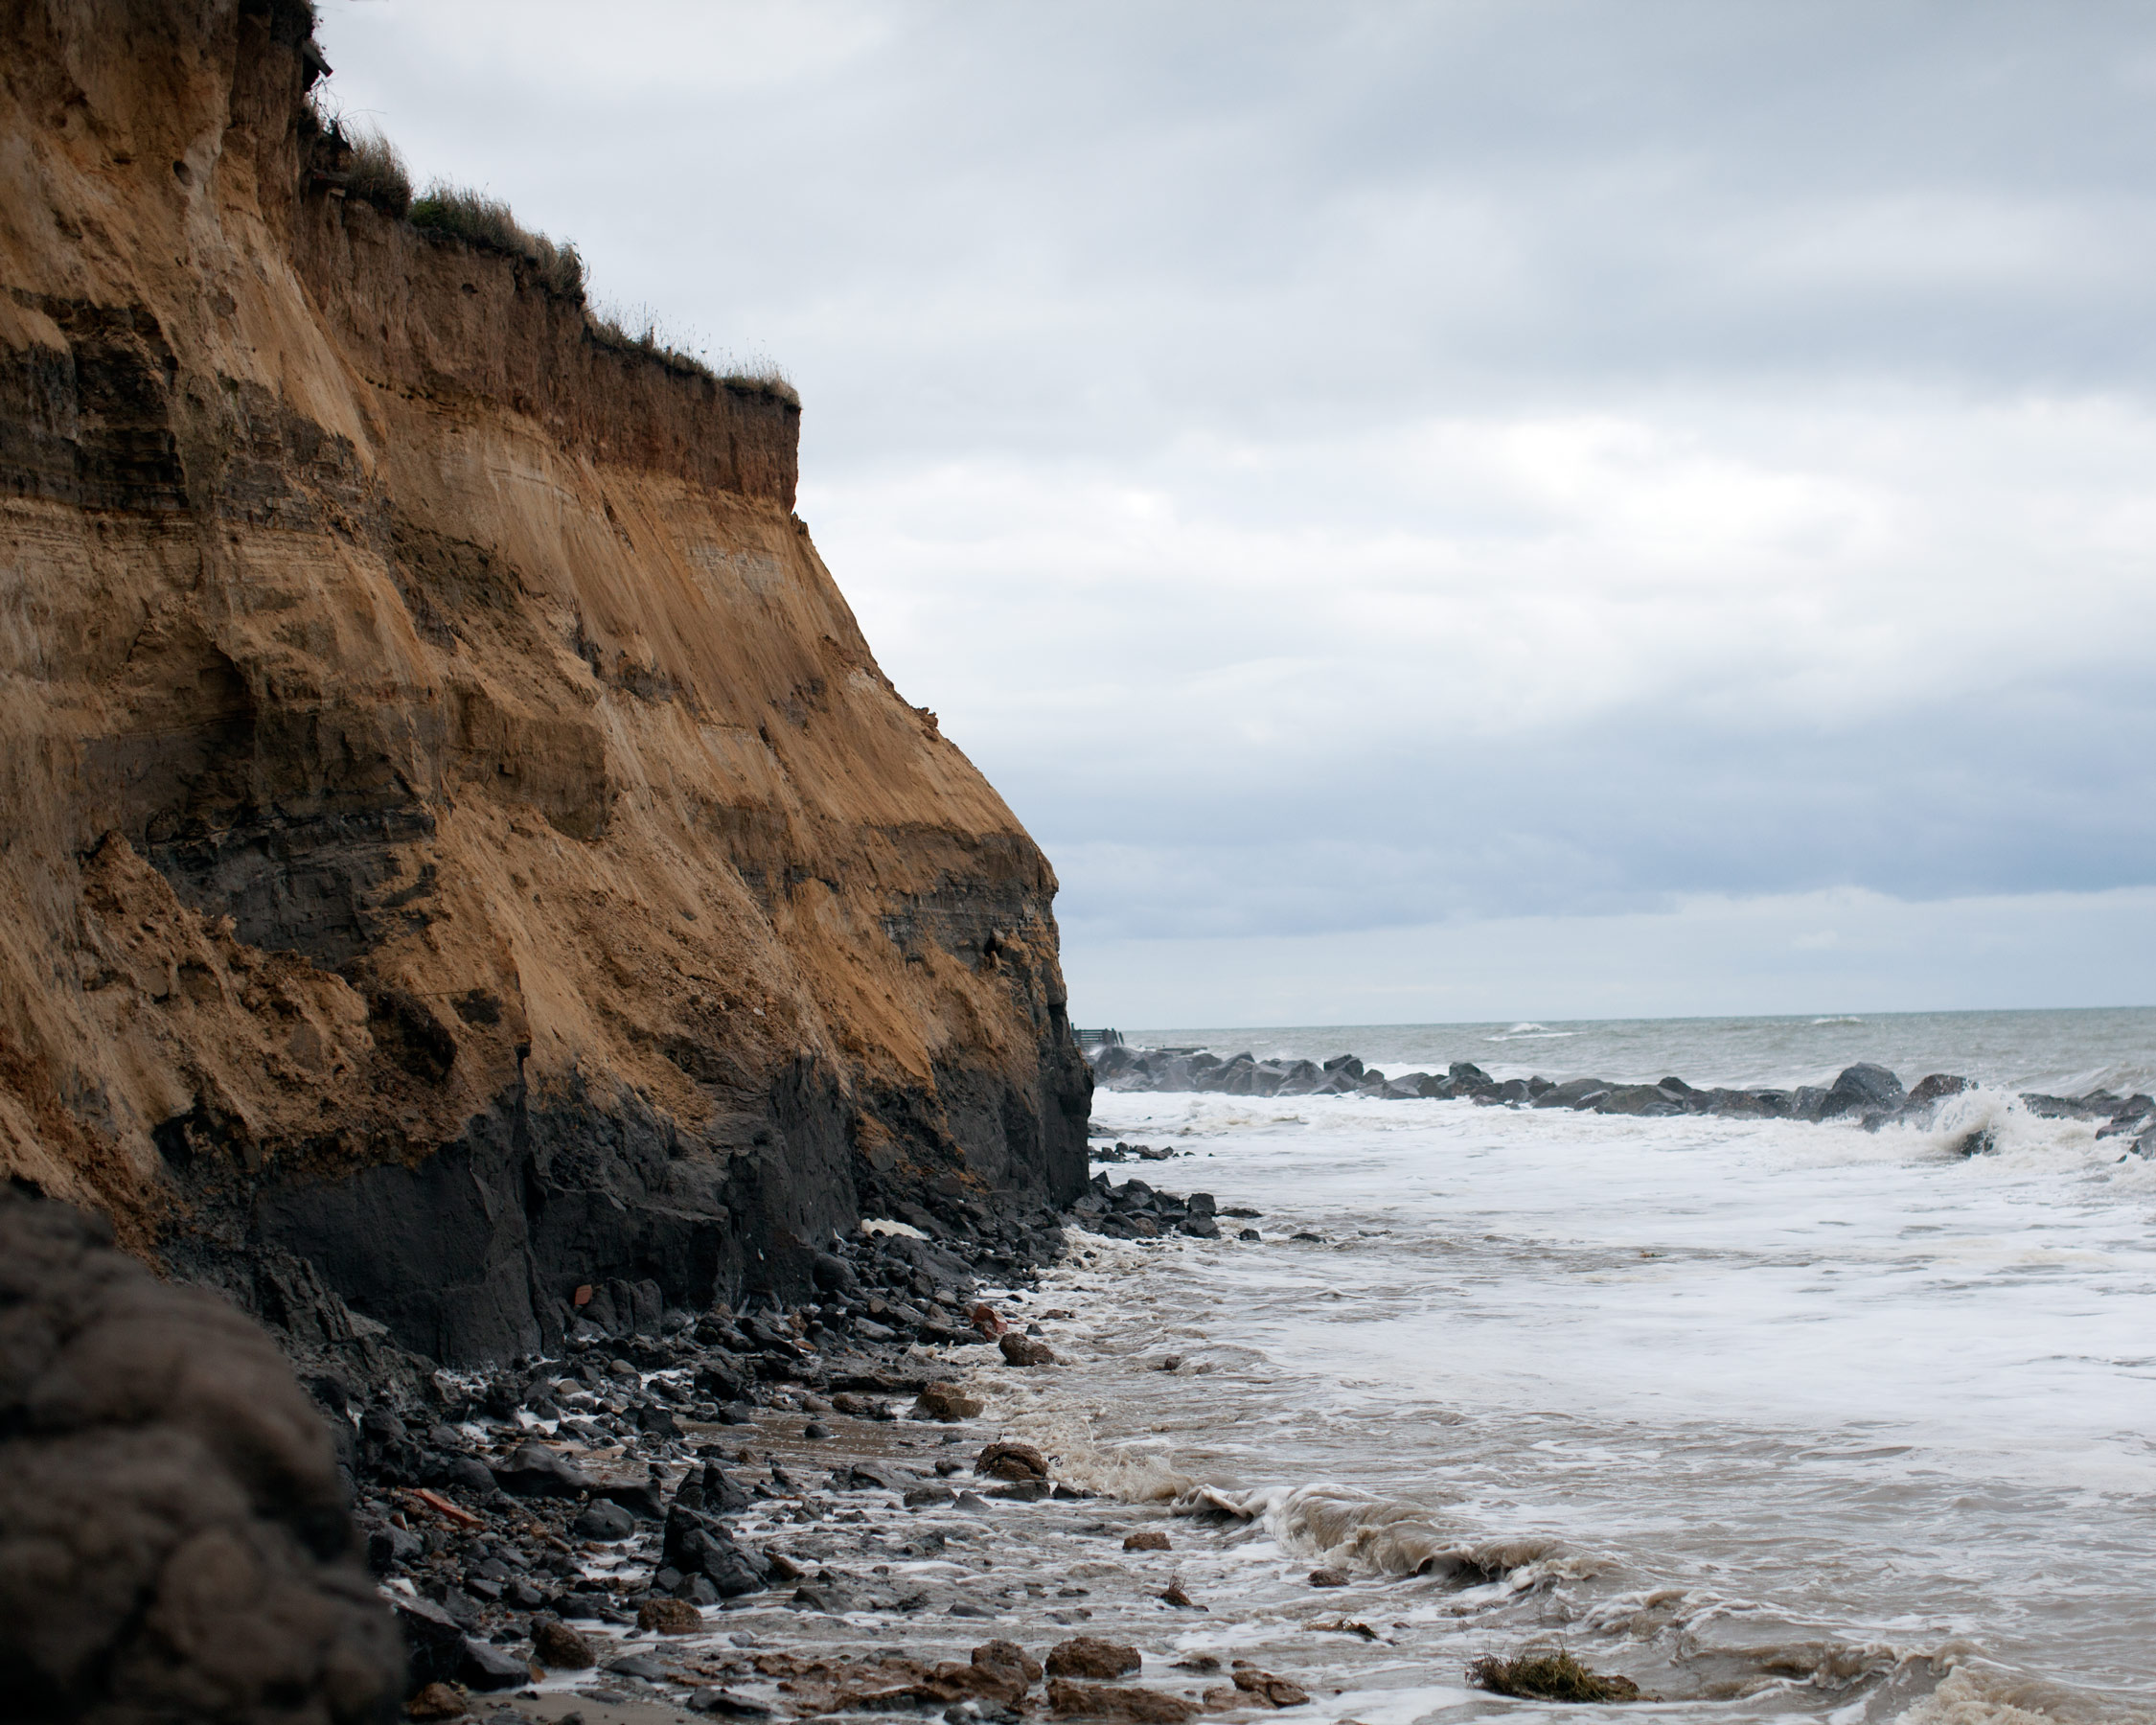 In 2007 4,000 tonnes of rocks were placed at the foot of the cliffs in Happisburgh.At a cost of £200,000 to North Norfolk District Council and £50,000 to villagers but these defences have now been washed away, leading to huge erosion.